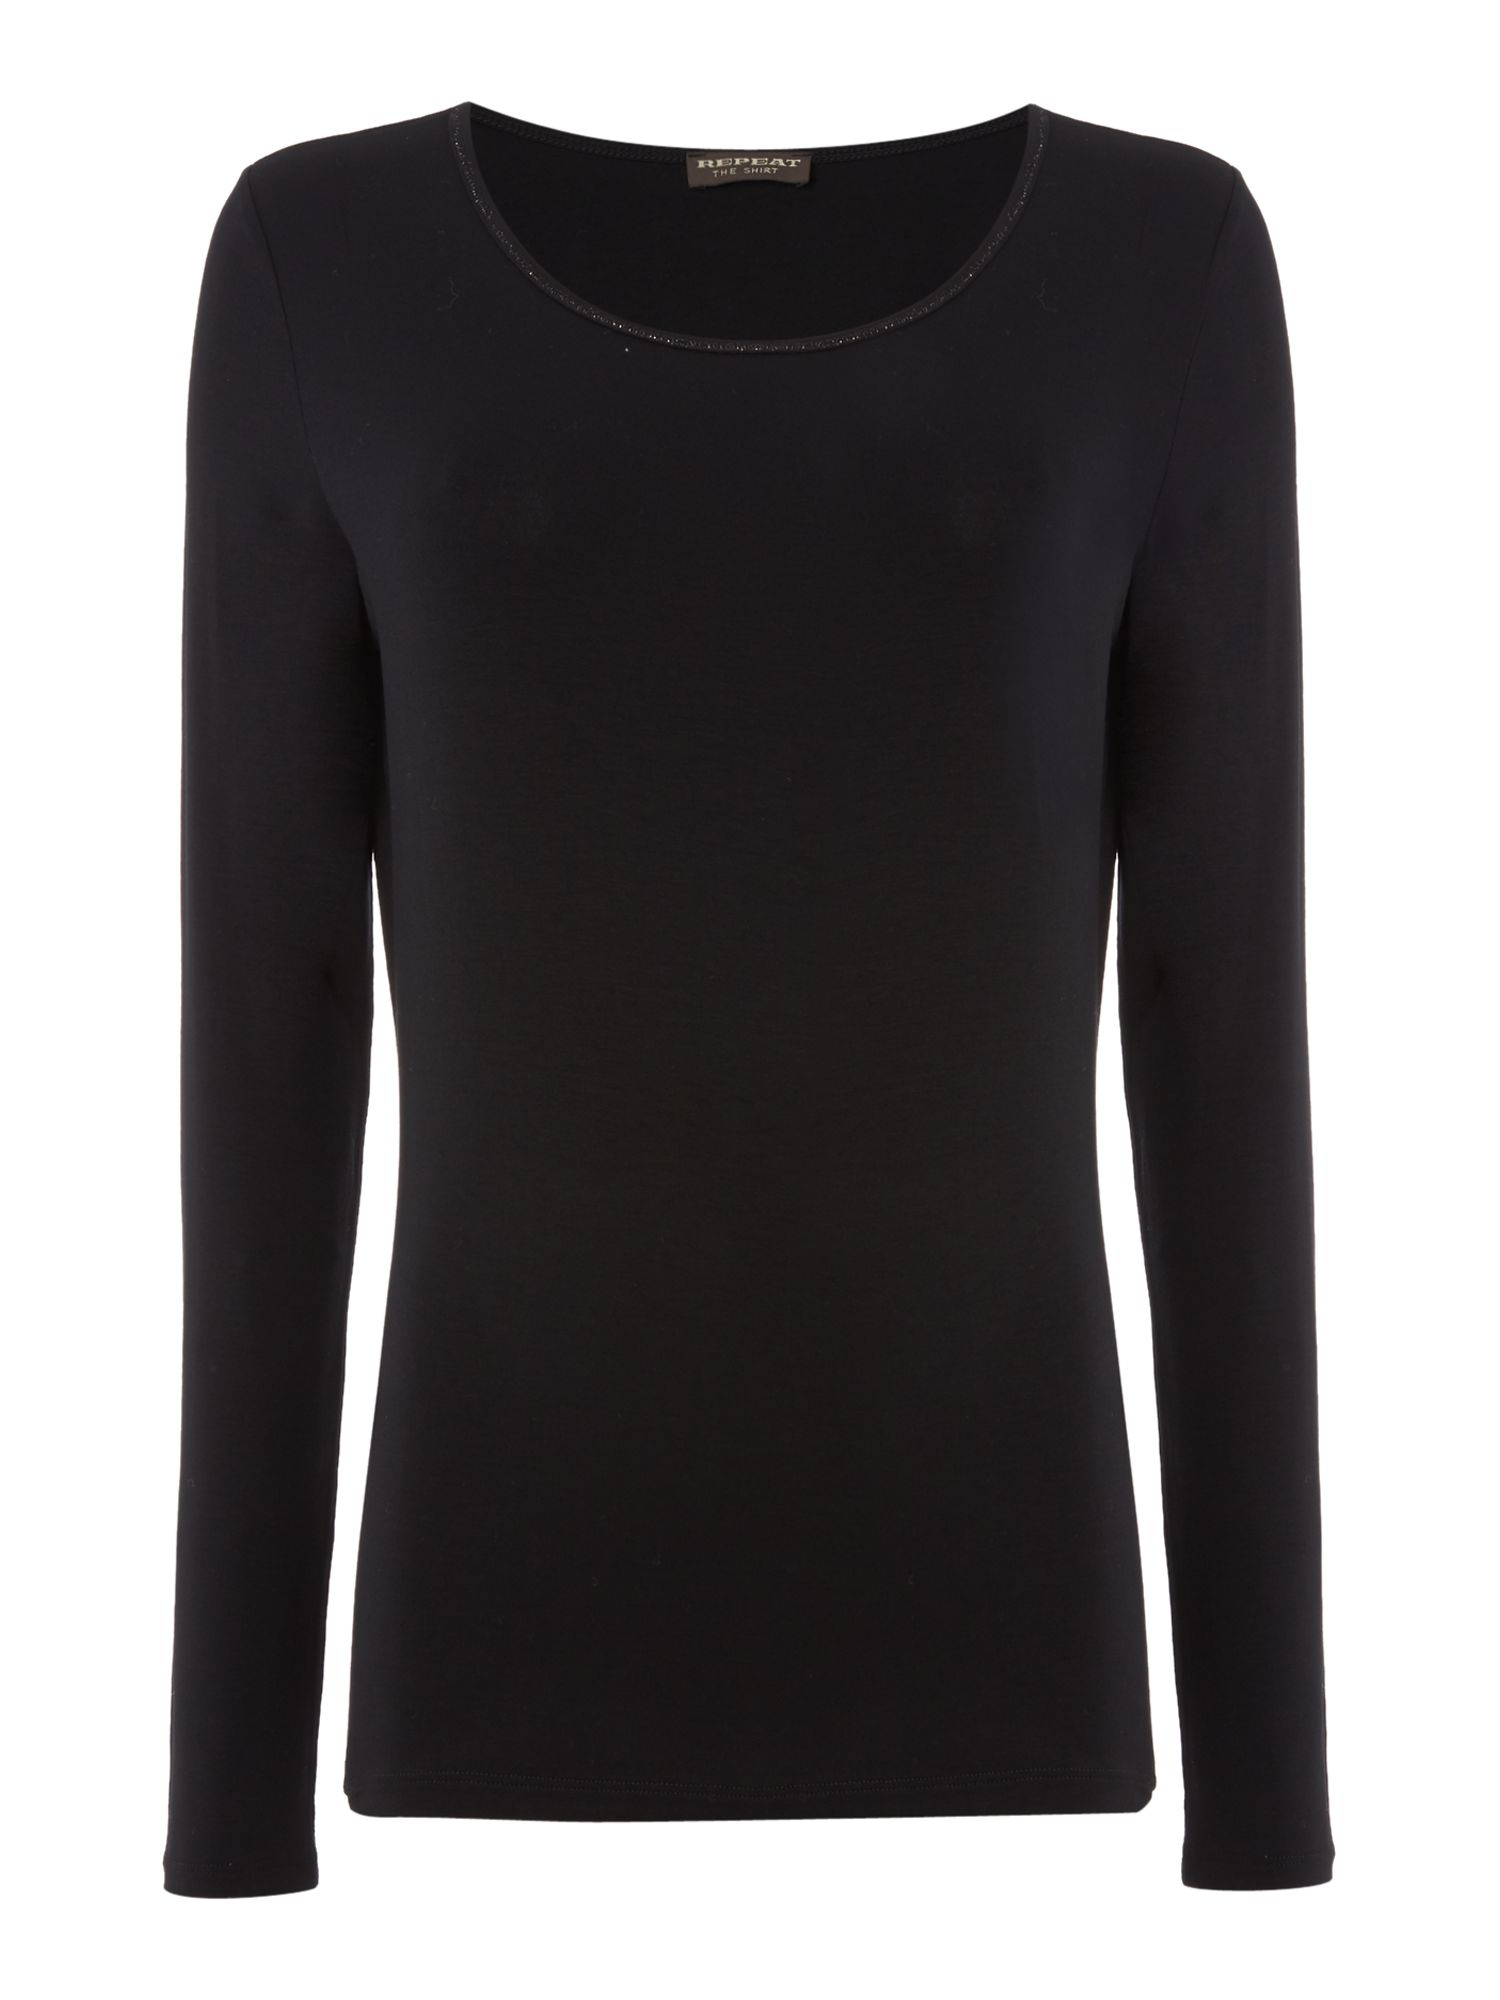 Repeat Cashmere Repeat Cashmere Round neck long sleeve top, Black